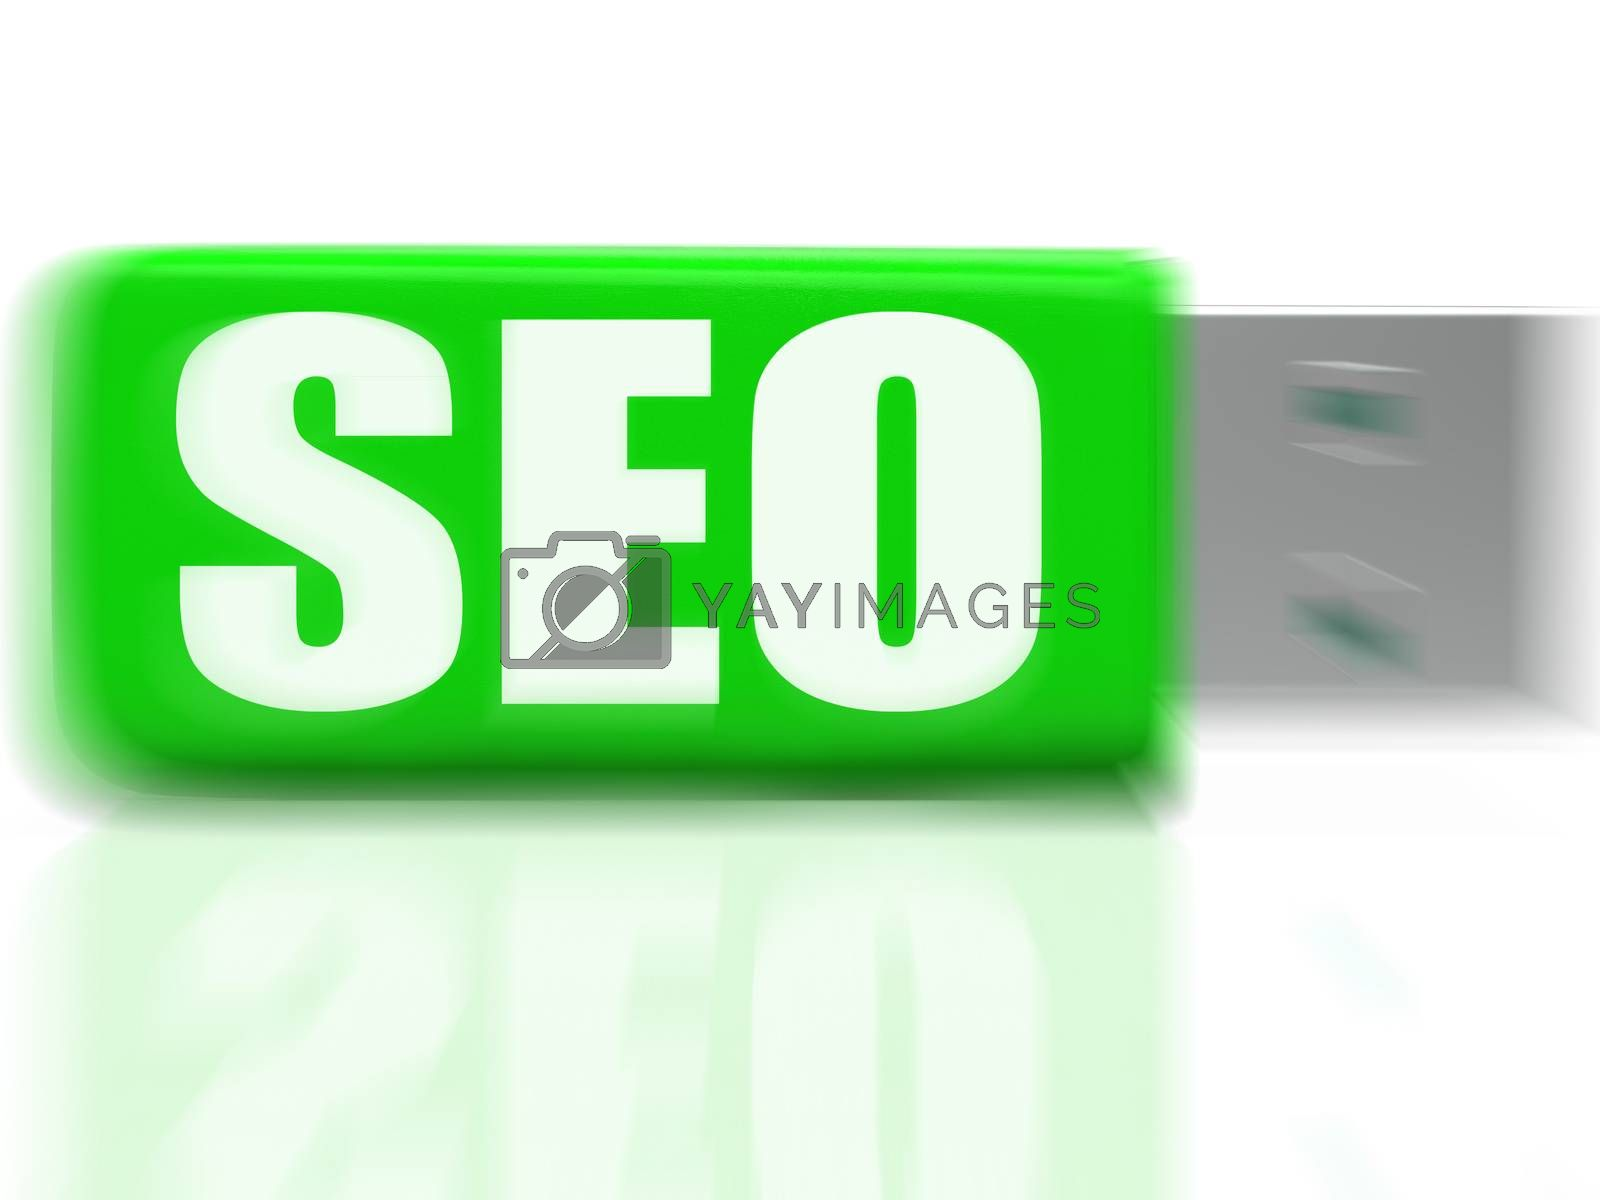 SEO USB drive Means Online Search And Development by stuartmiles